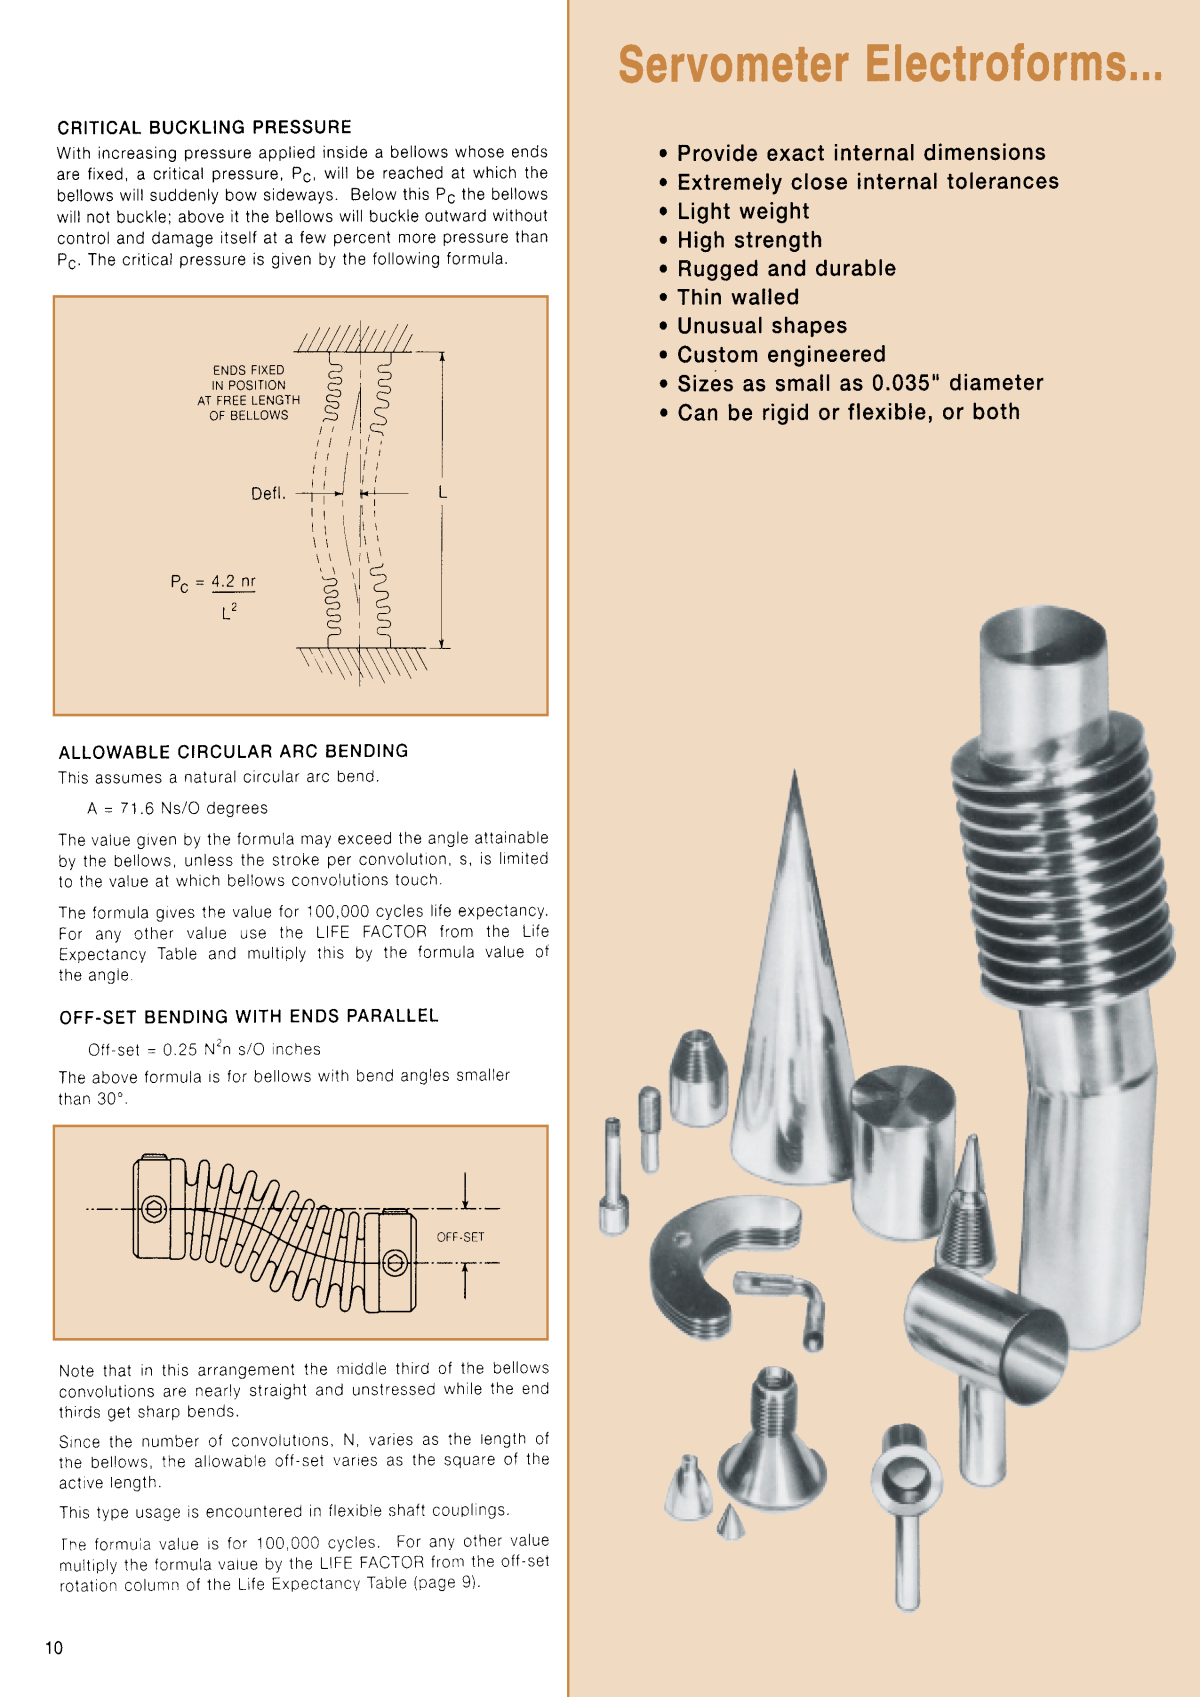 Miniature Metal Bellows & Electroforms Page 10